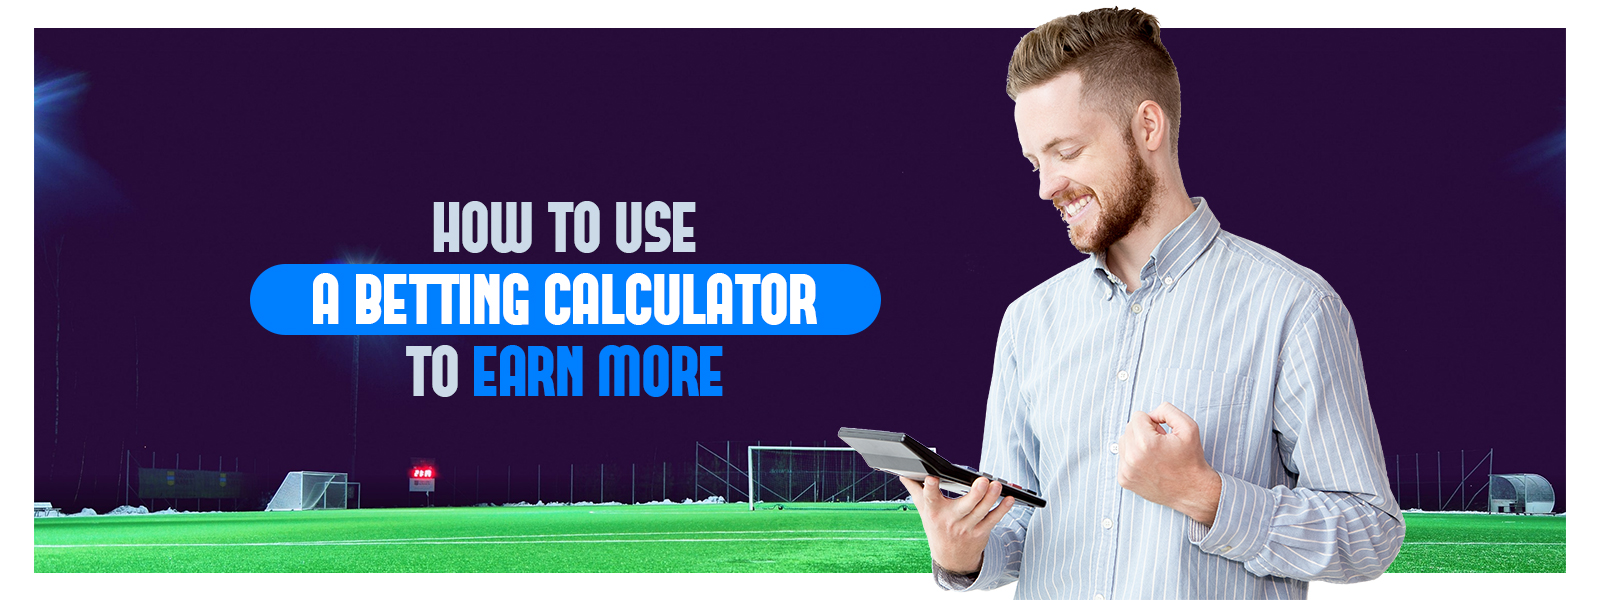 4 Tips To Use A Betting Calculator To Earn More